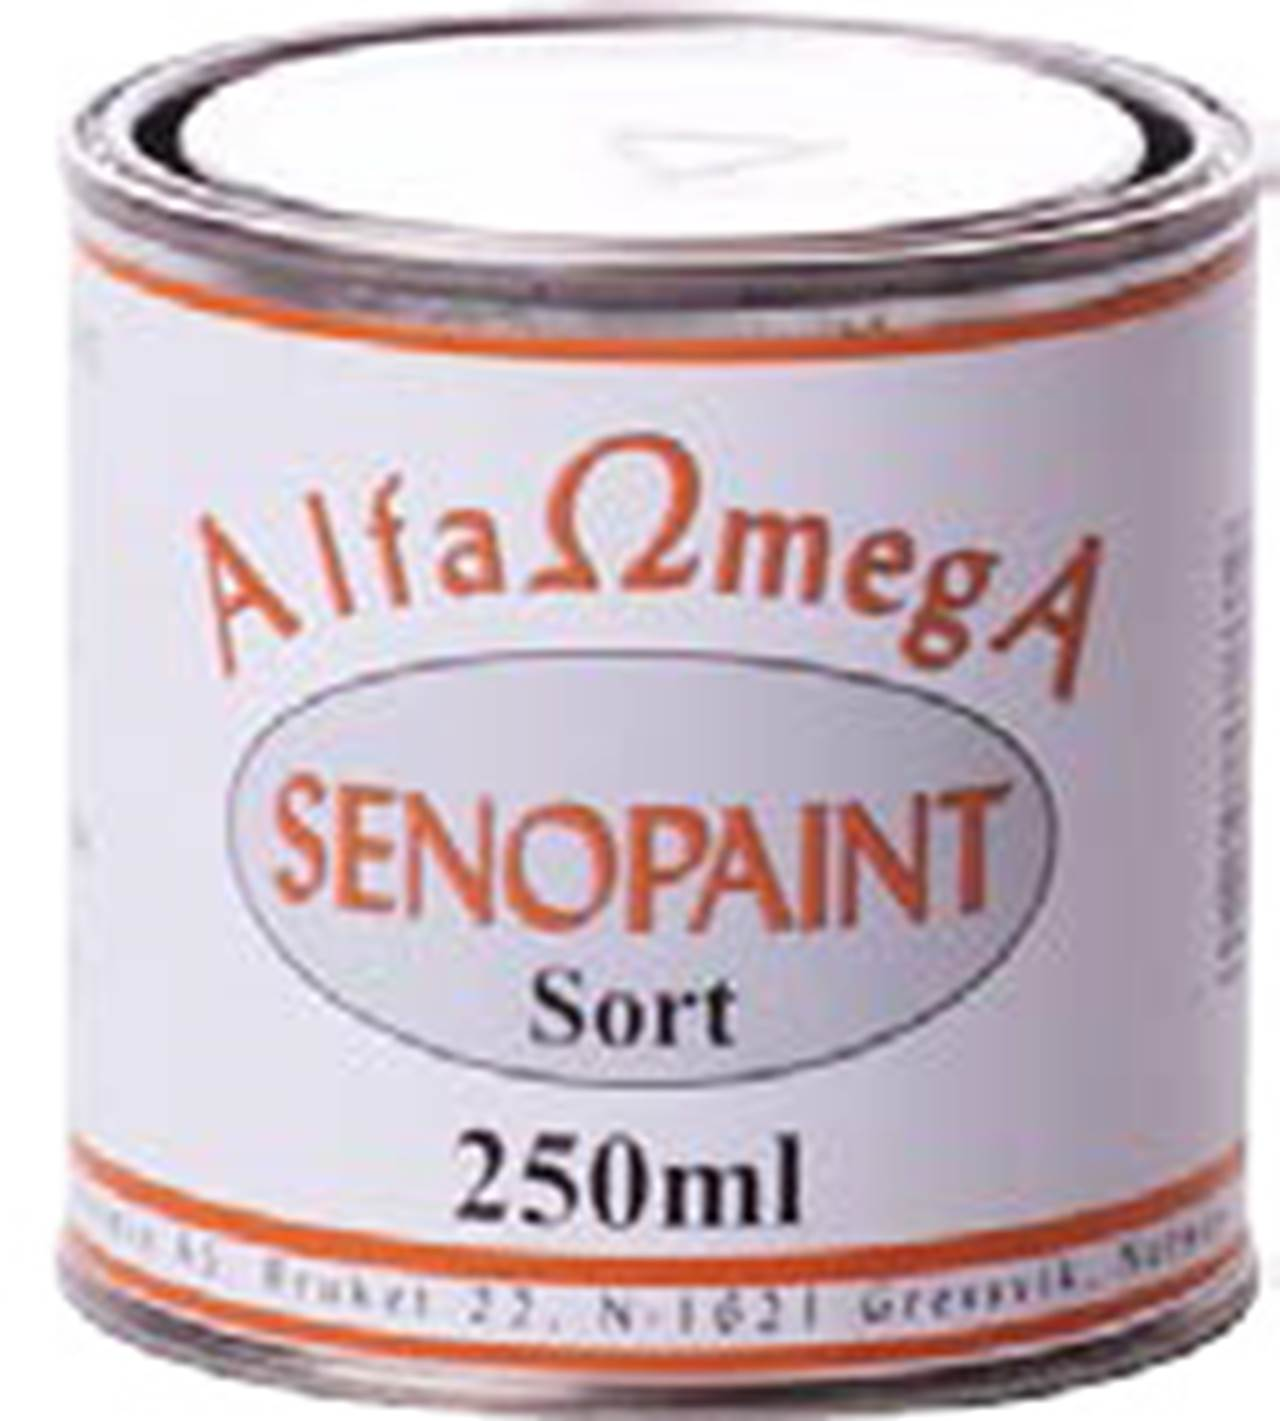 SENOPAINT 1/4 BOX, SORT 700° C  2,5dl